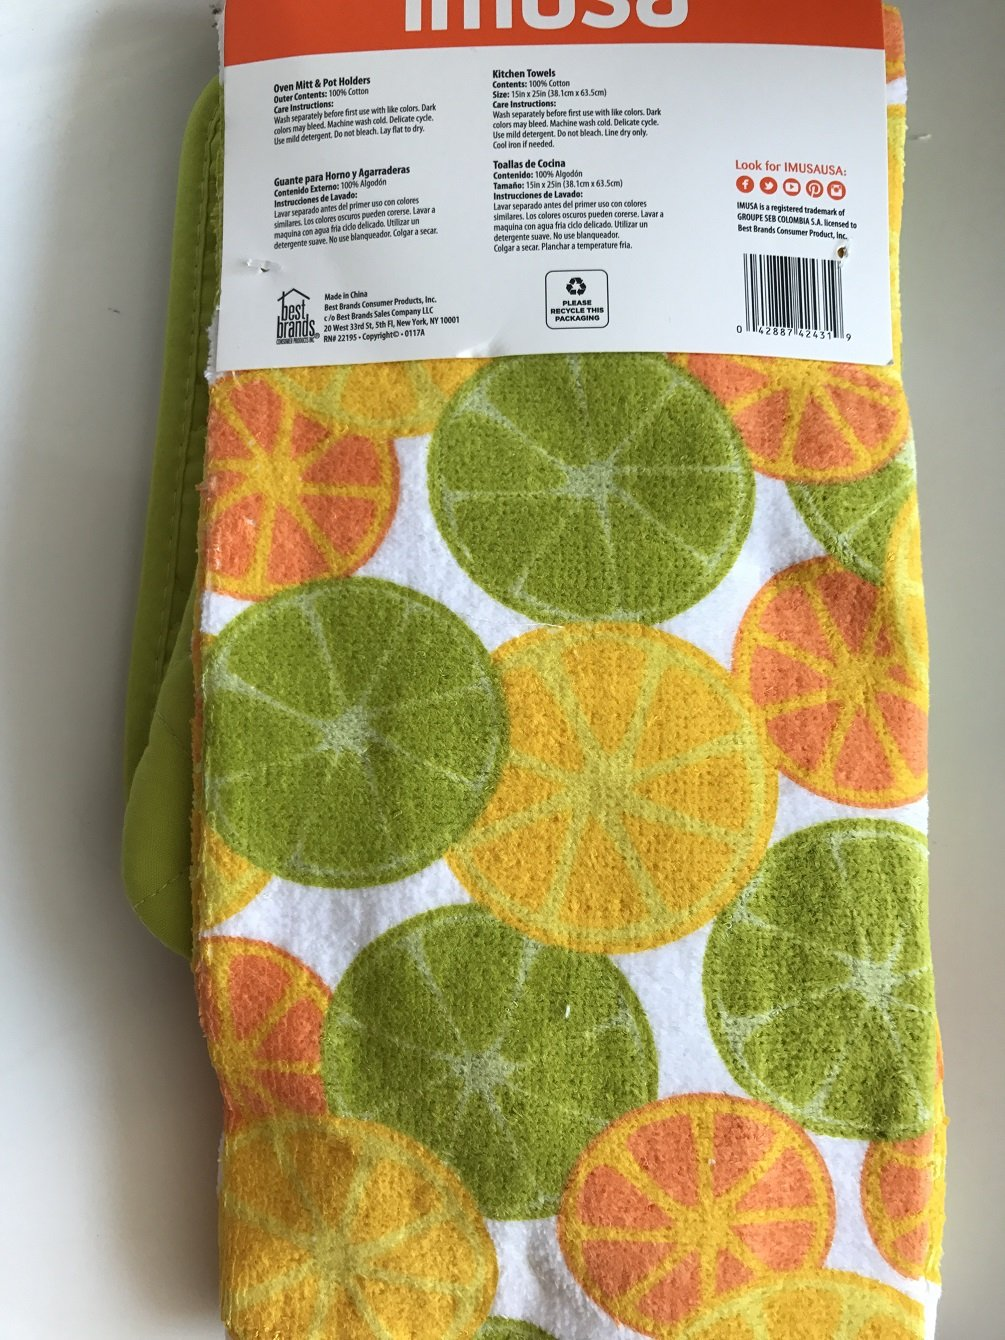 Amazon.com: IMUSA 5 Piece Kitchen Towels Set Oven Mitt and Pot Holders Yellow Citrus: Home & Kitchen